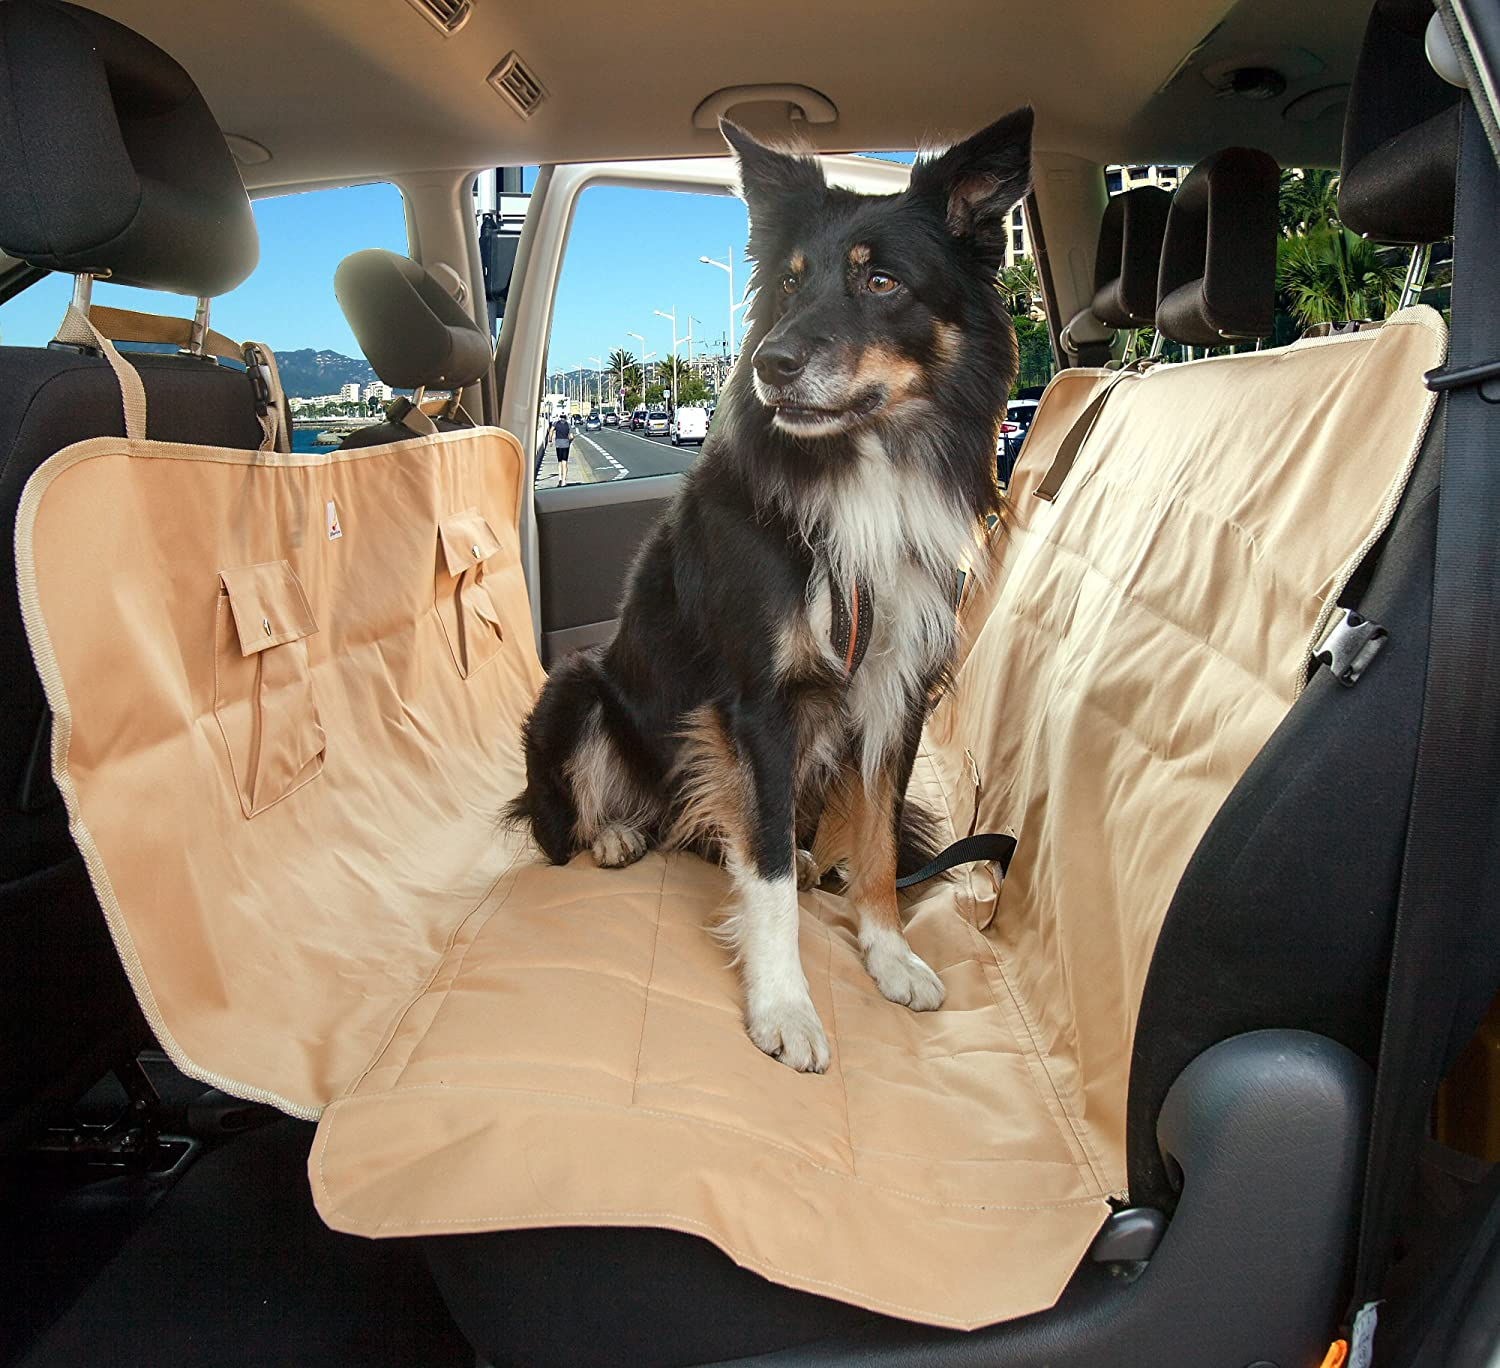 amazon     car hammock for dogs   pet seat cover   premium nonslip leather and upholstery dog car seat   waterproof dog barrier   pet supplies amazon     car hammock for dogs   pet seat cover   premium      rh   amazon